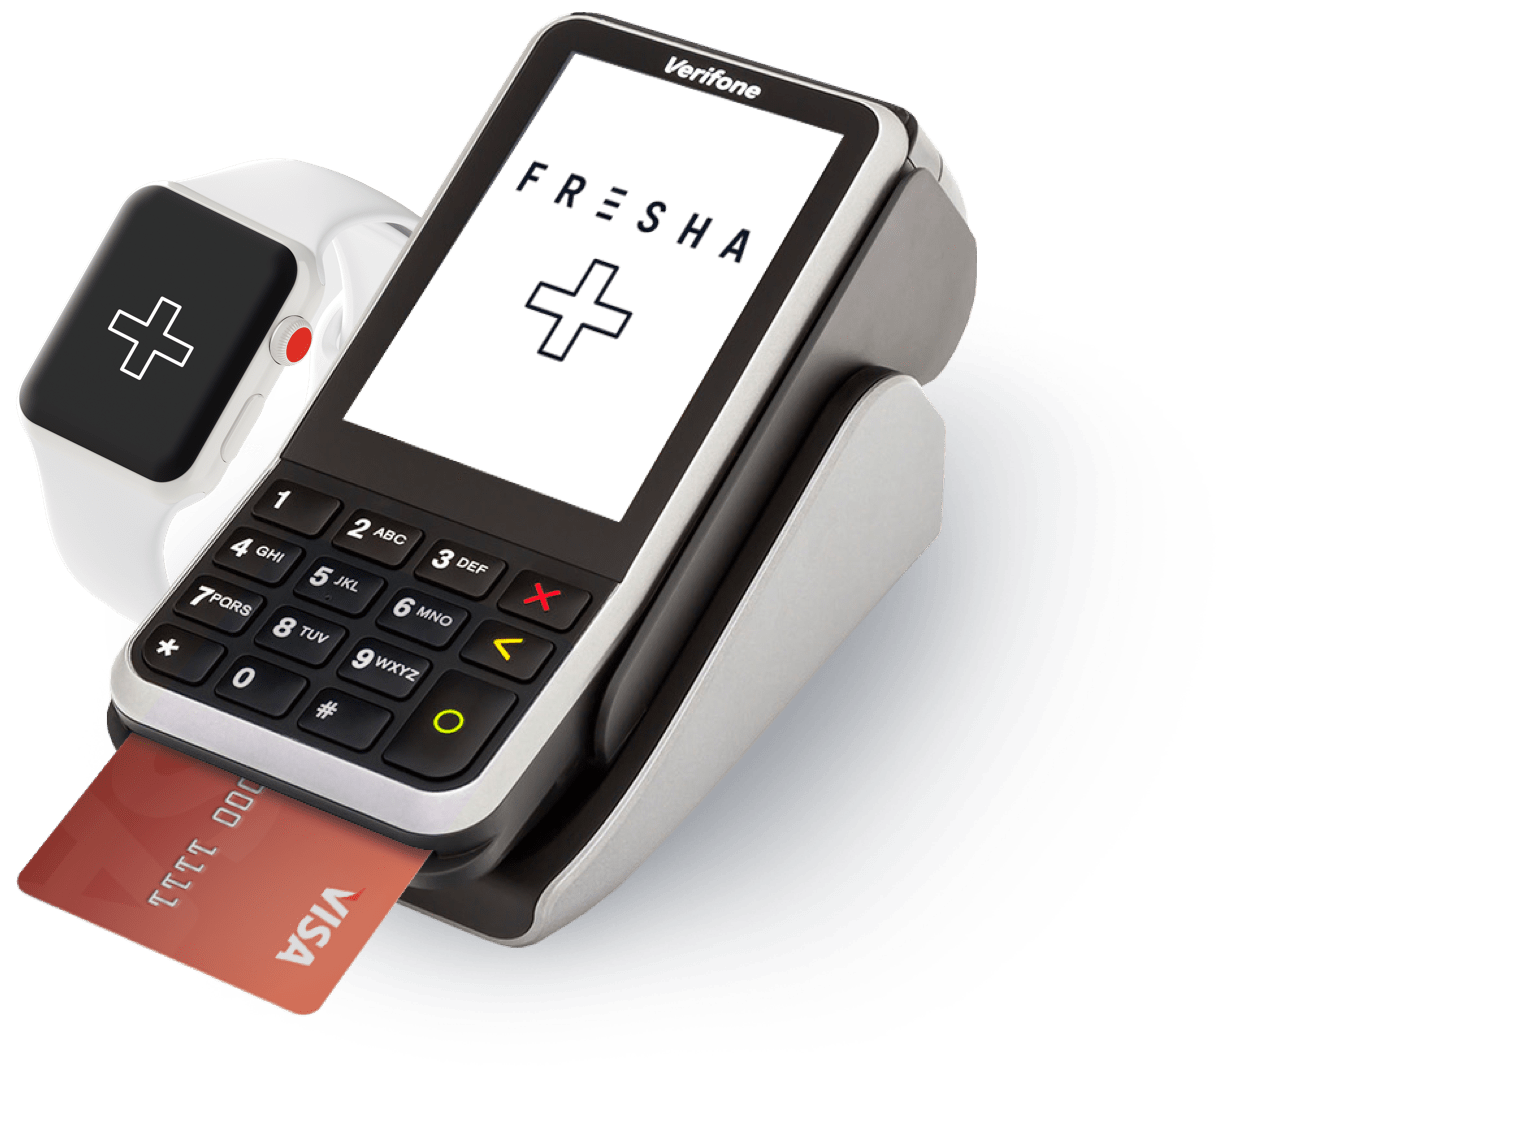 Therapy Center payment terminal, payment processing and online payments solution